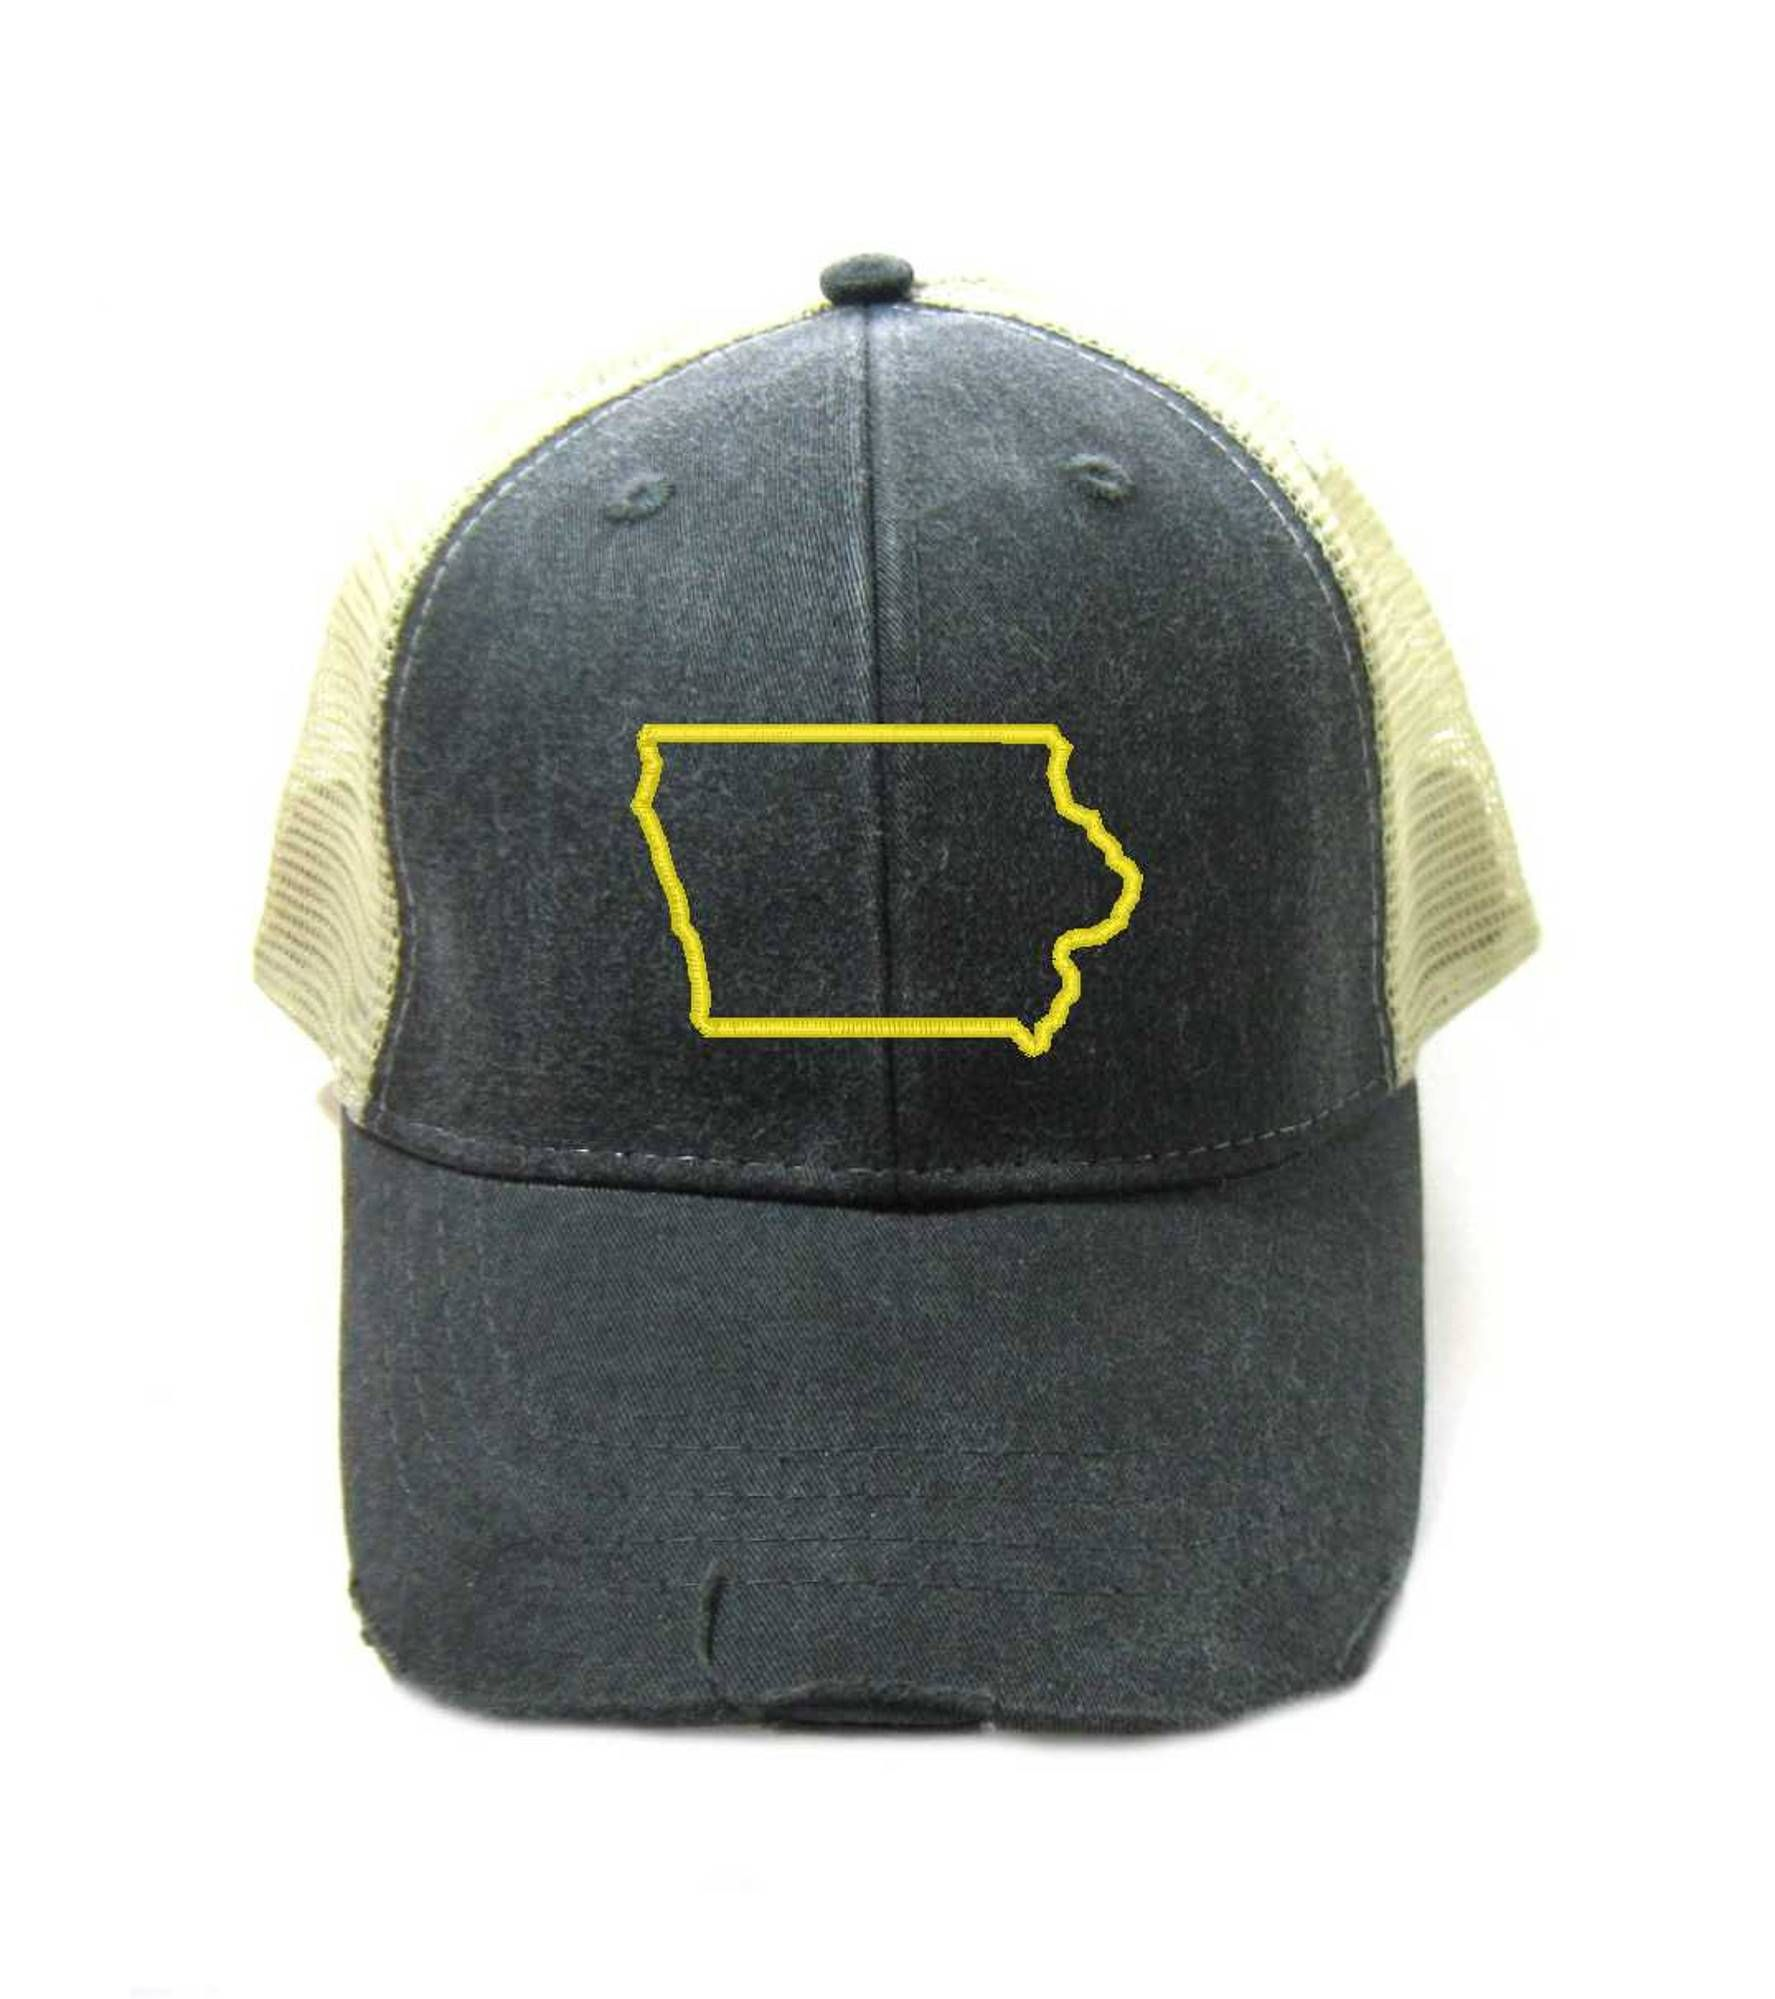 a5415983d02 Iowa Hat - Distressed Snapback Trucker Hat - Iowa State Outline - Many  Colors Available